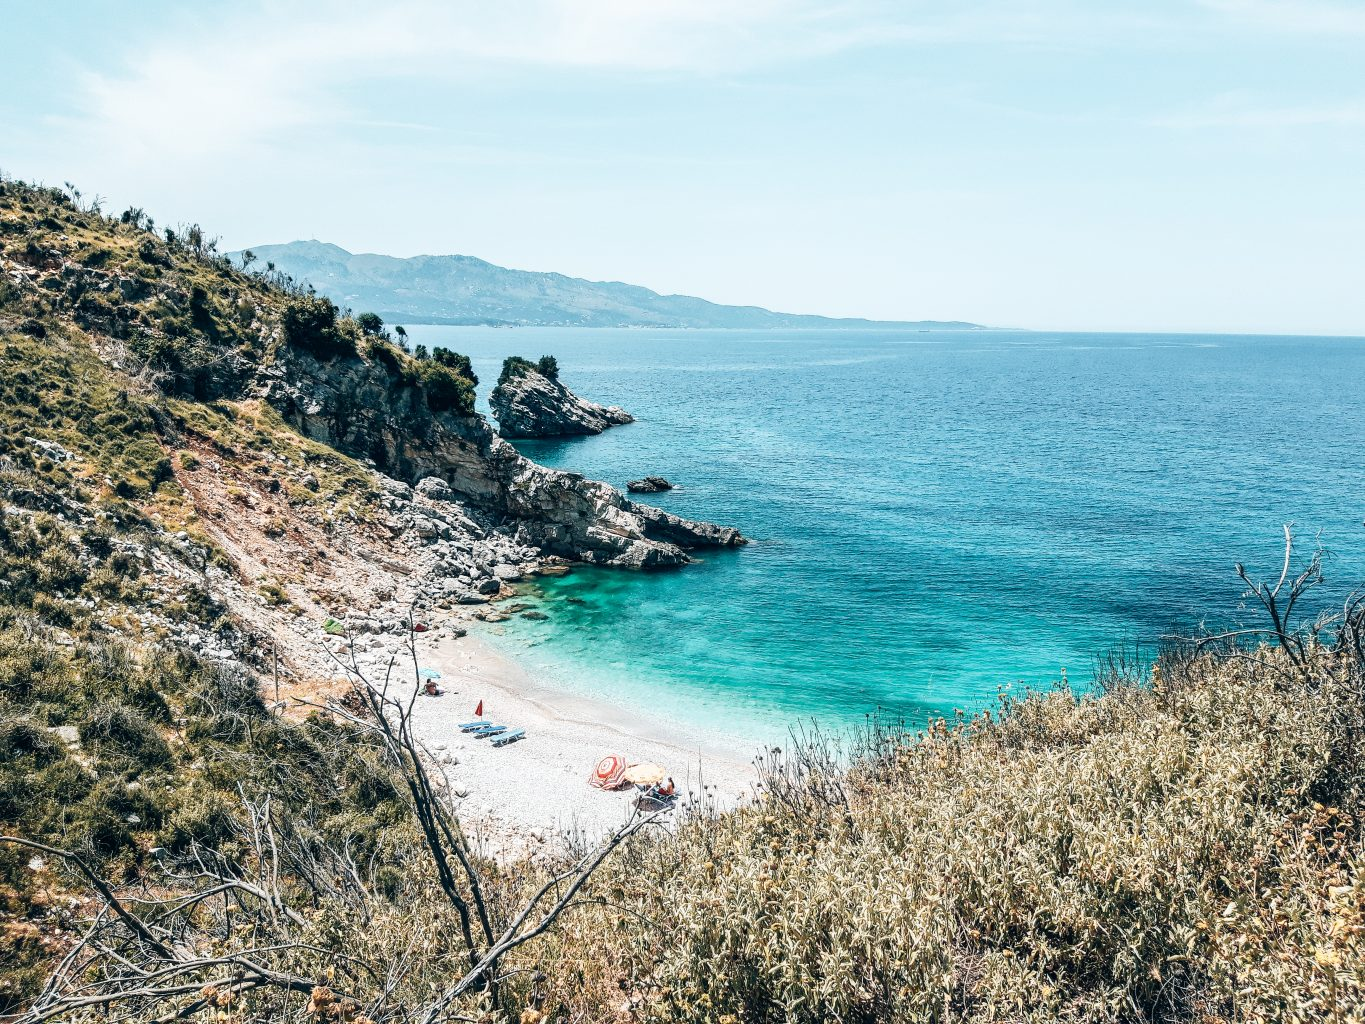 18 Things to do in Saranda, Albania